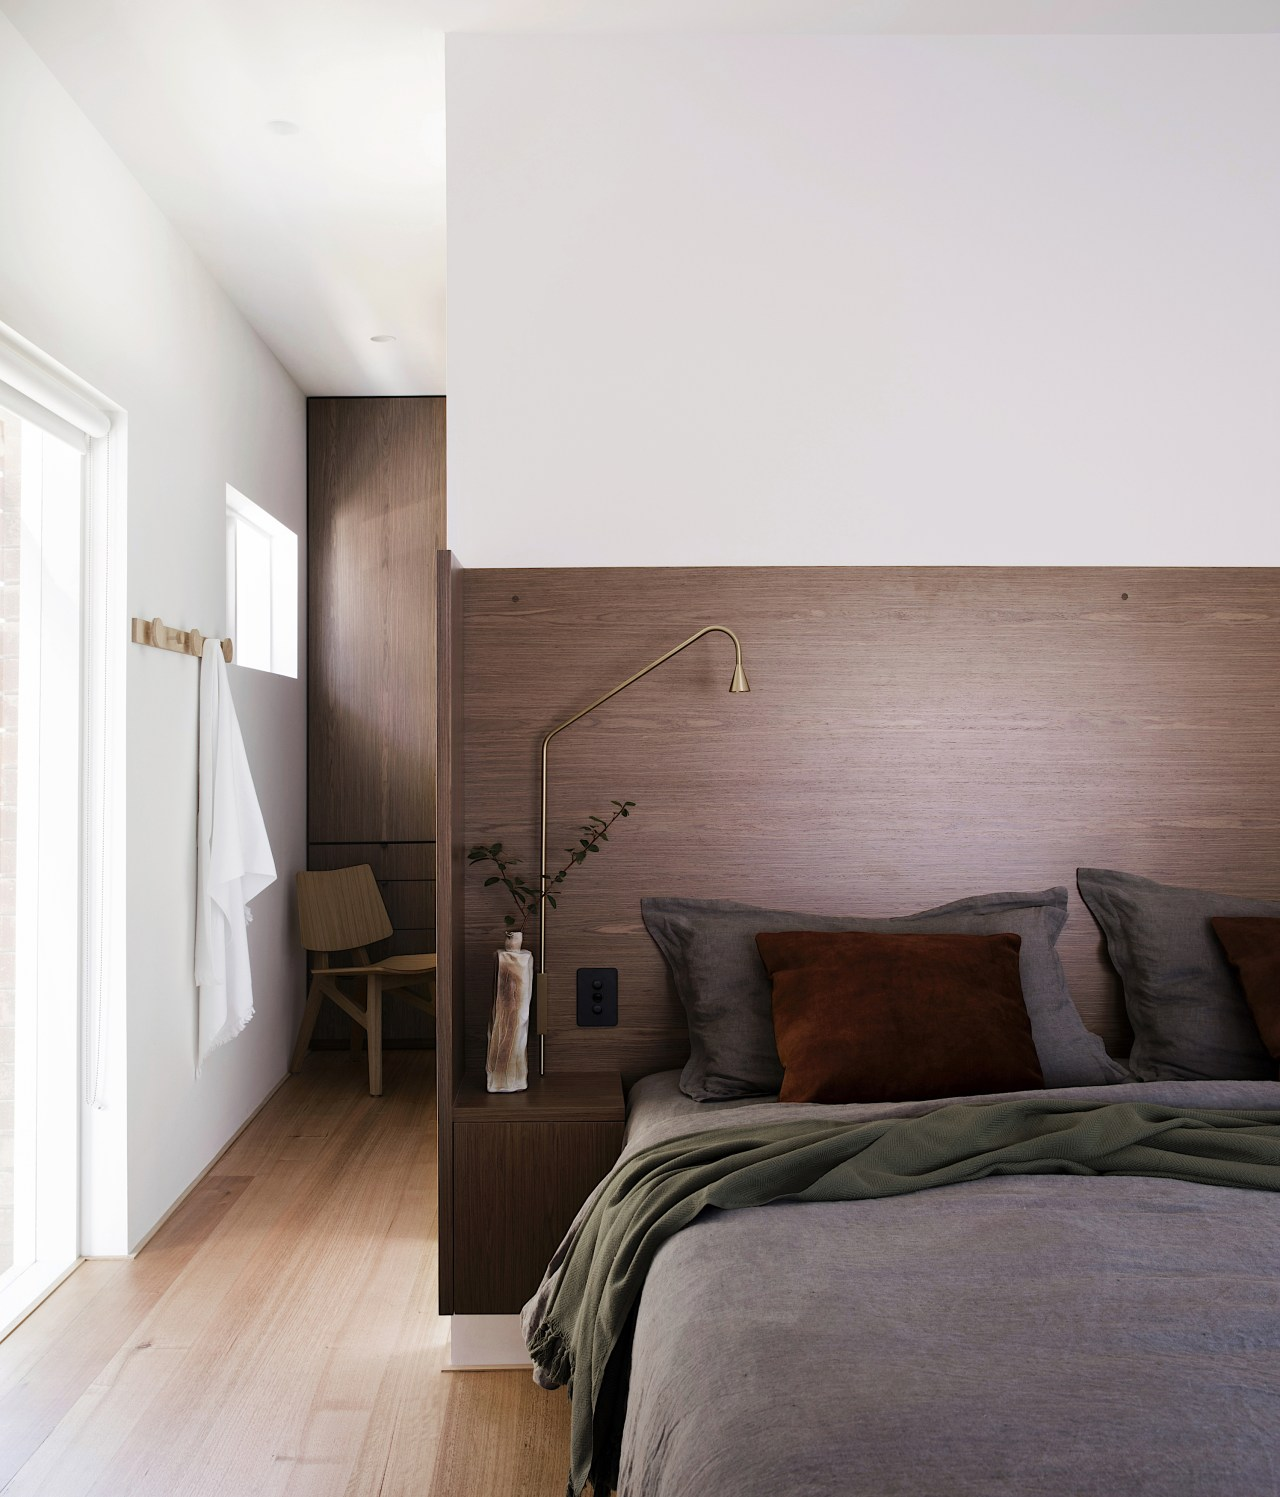 Walnut joinery features throughout the home, including on